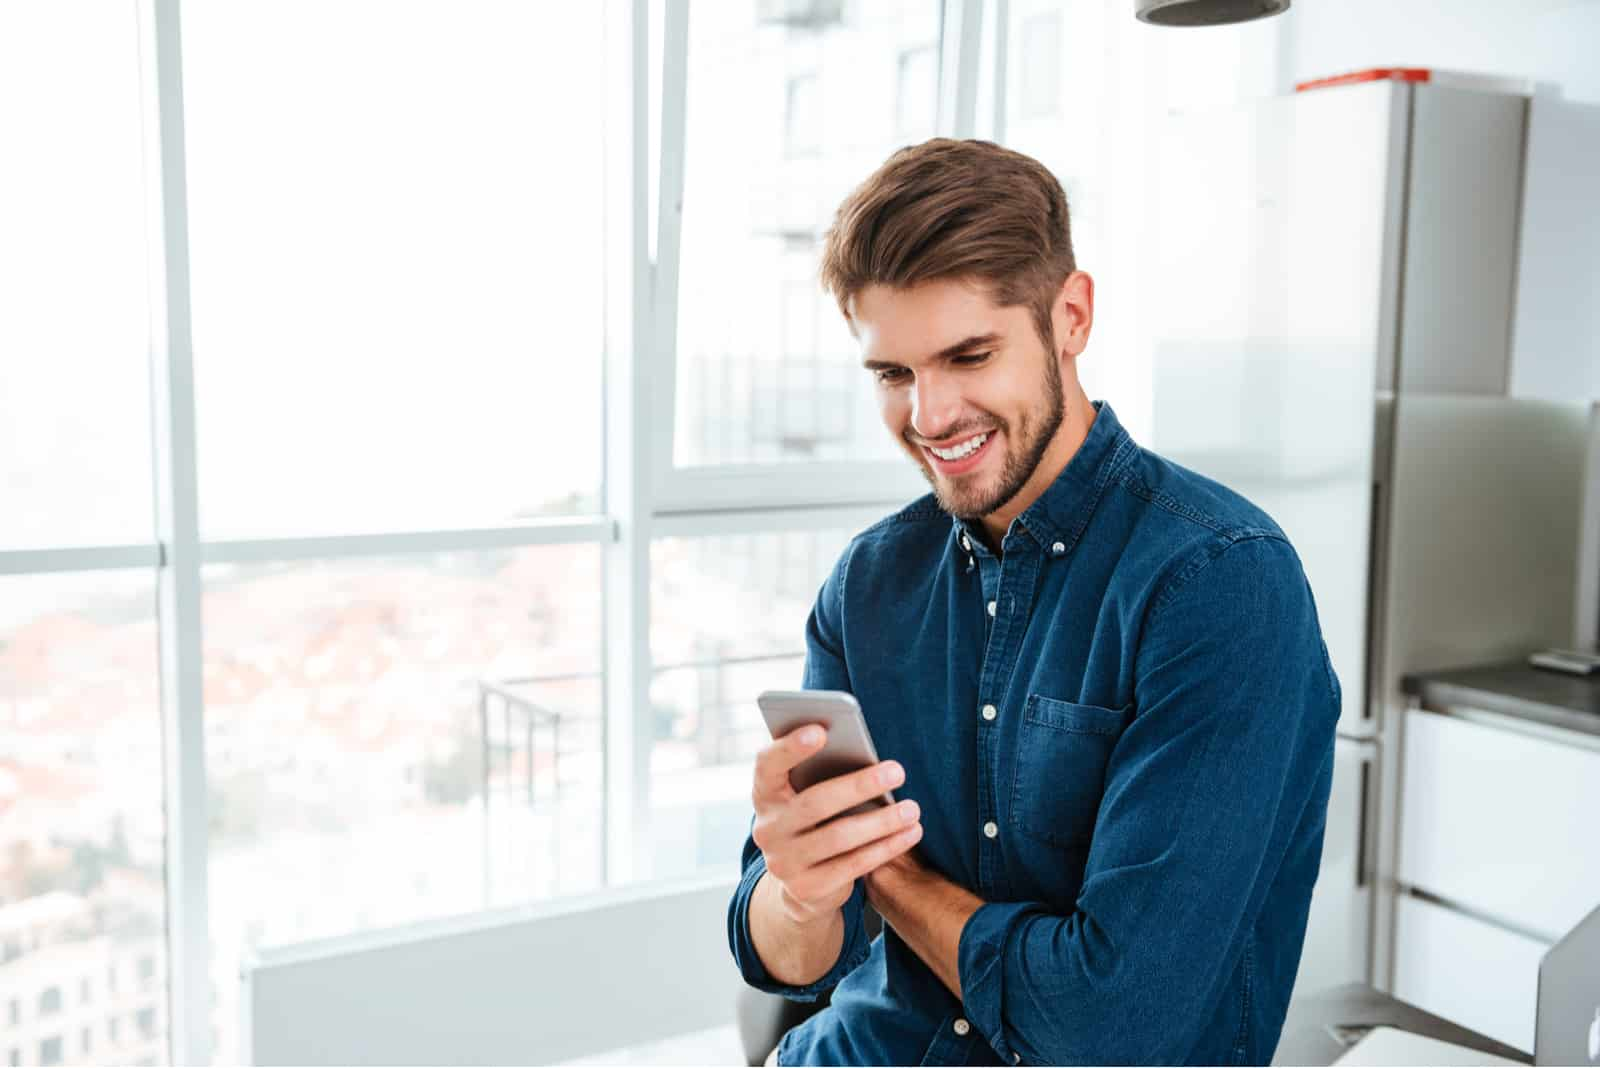 a smiled man stands in the office holding a phone in his hand